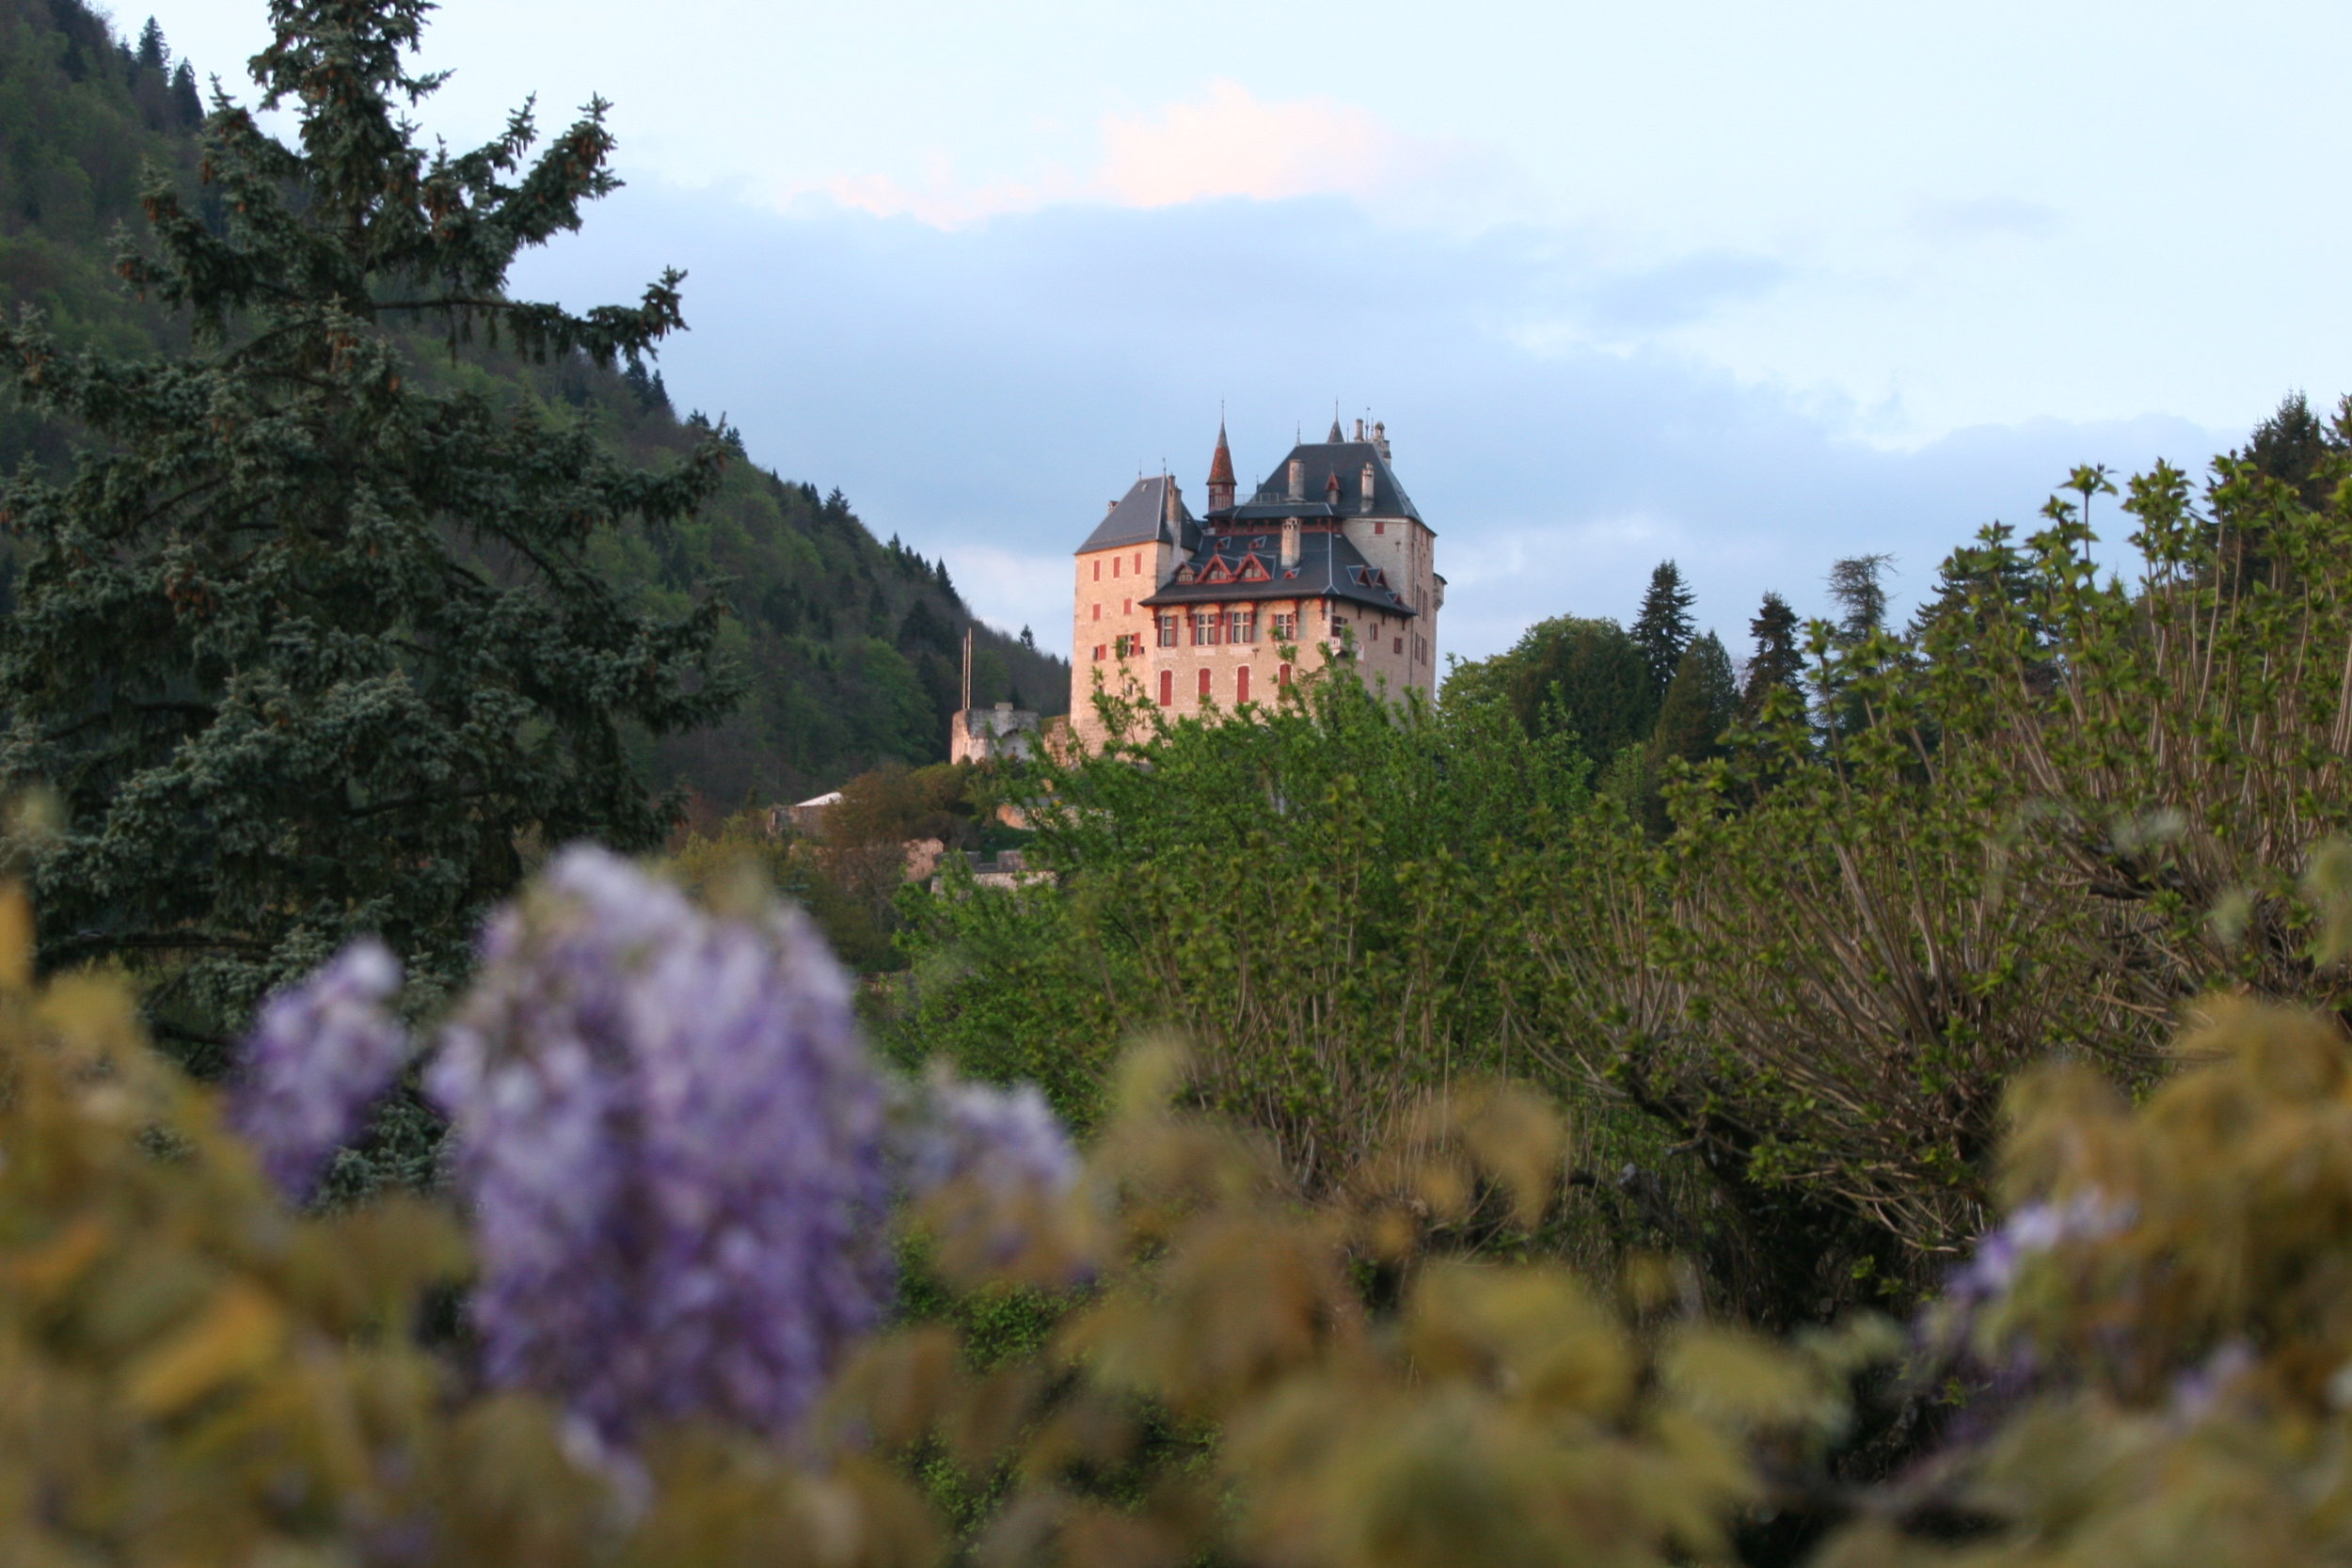 View of the Chateau Menthon-Saint-Bernard from the back deck.